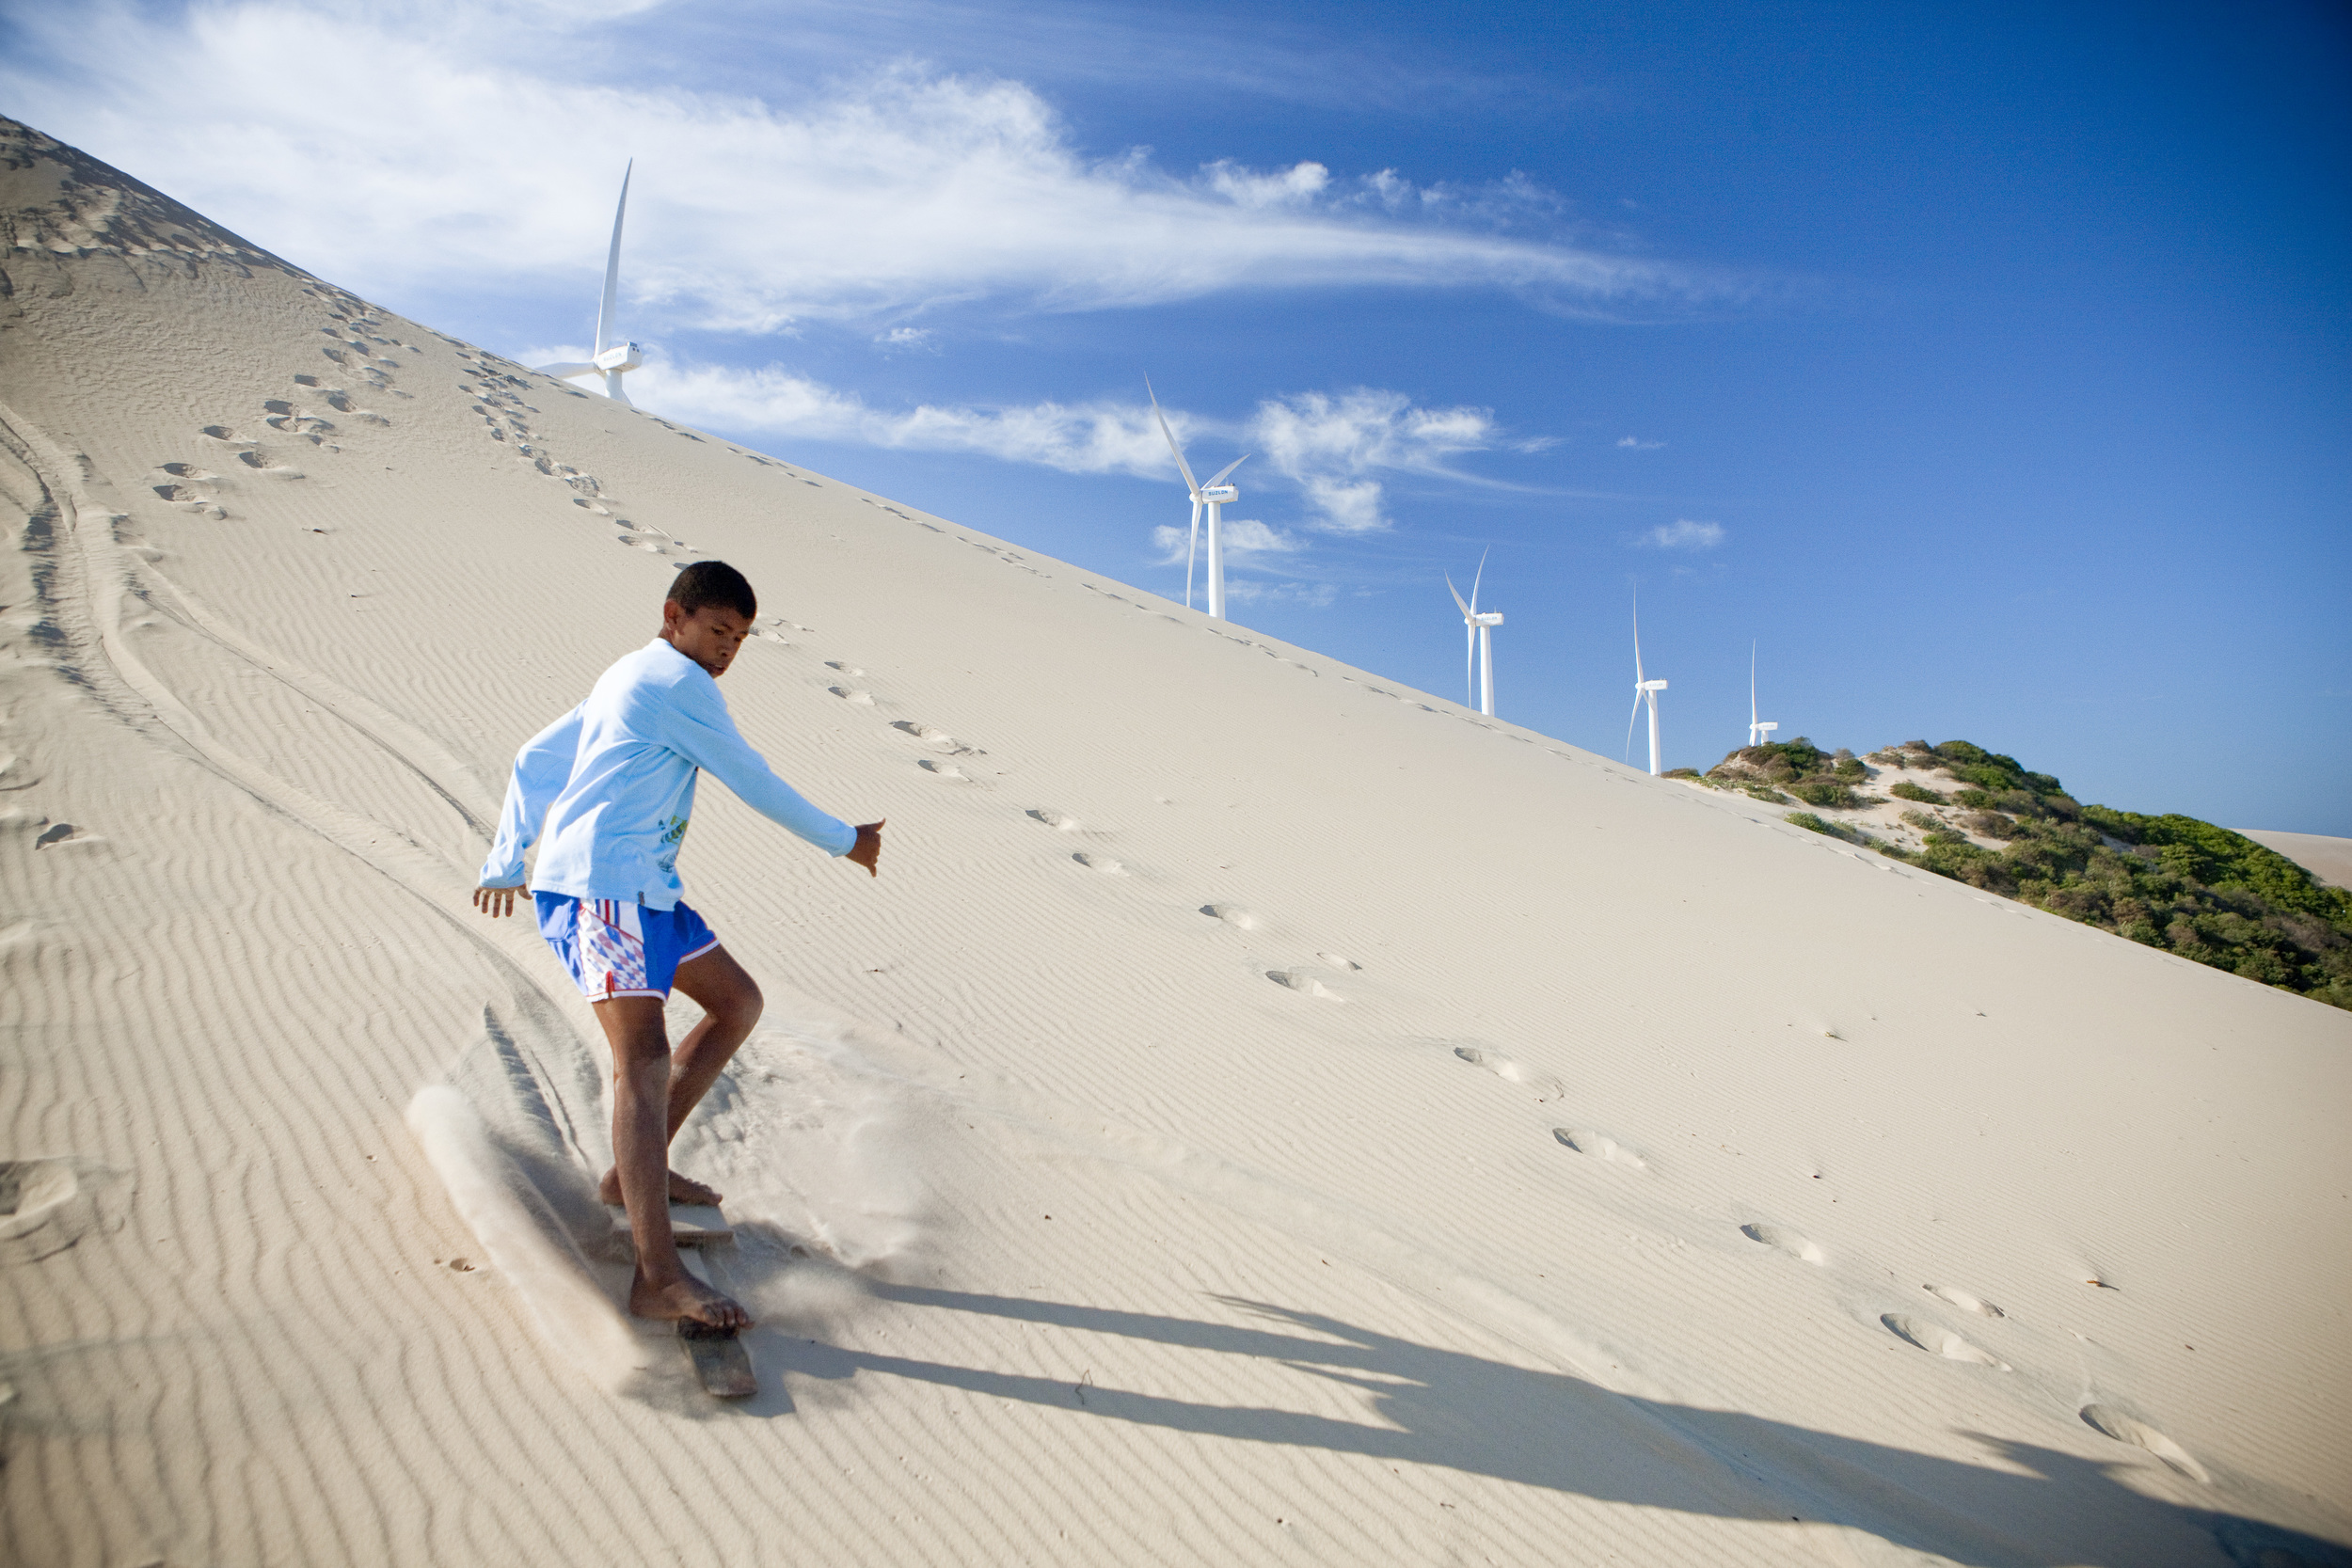 In the Dunes by the Wind Turbines (Sunset Dune)